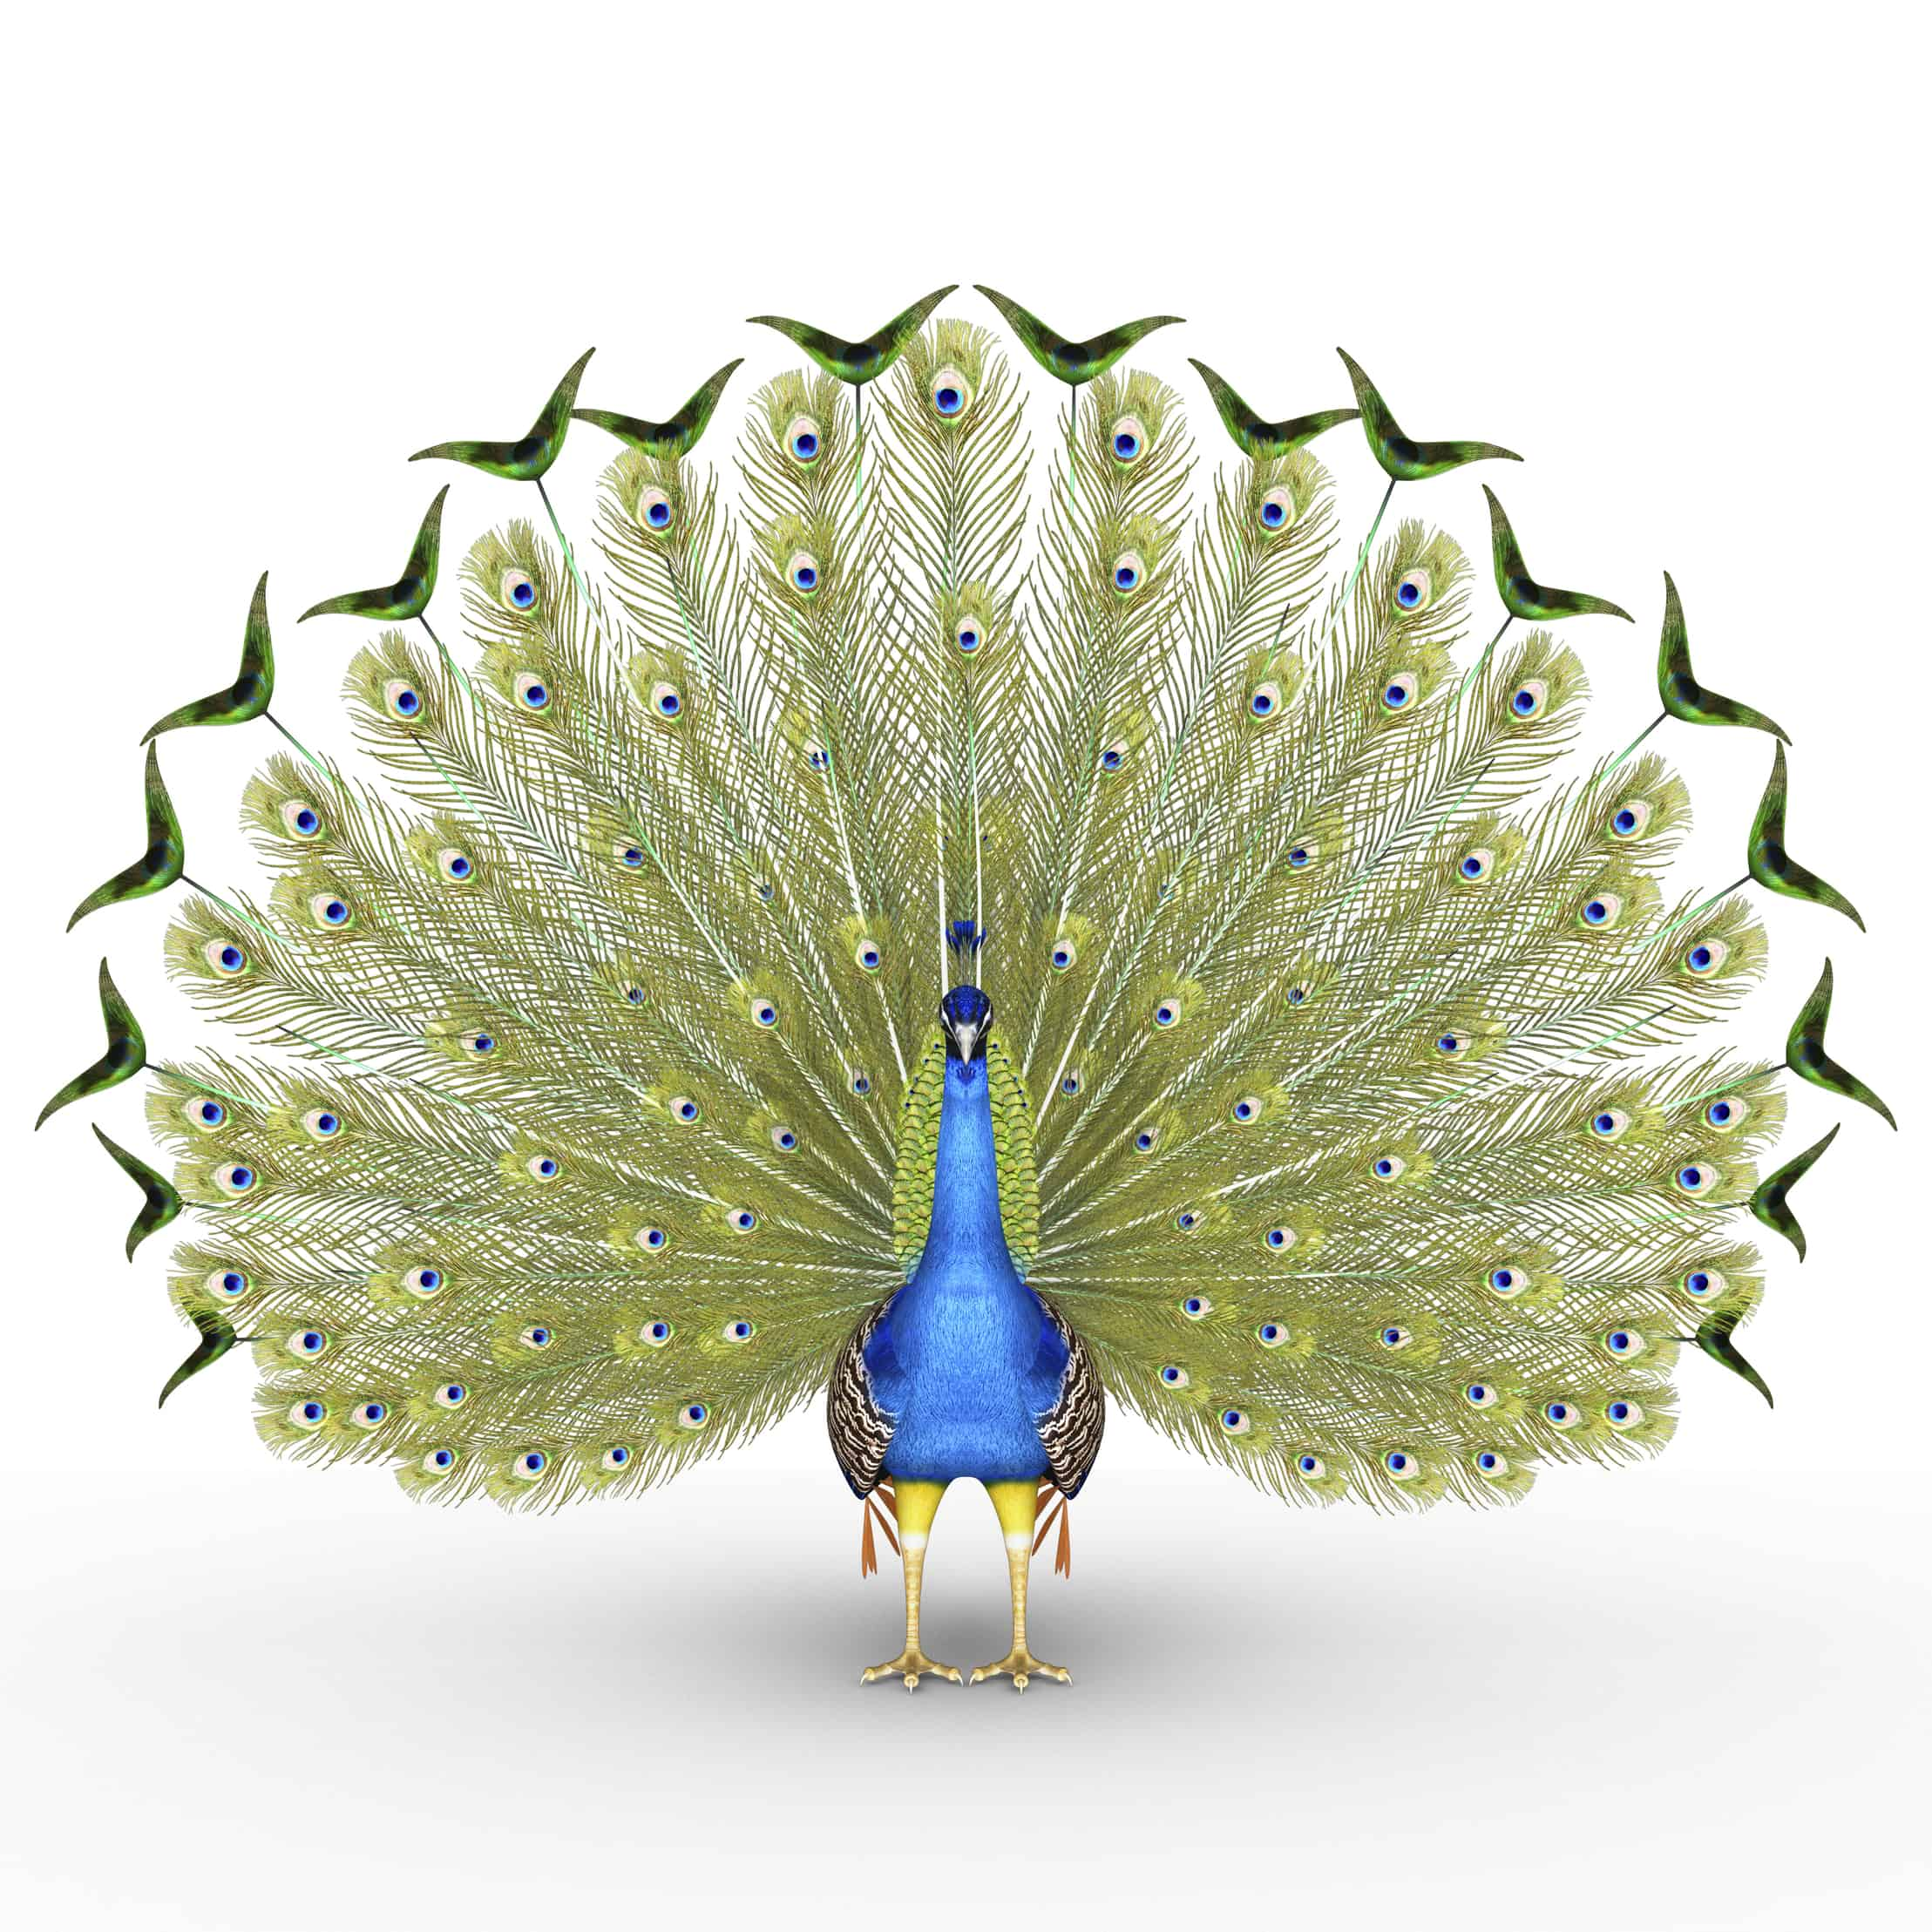 Peafowl include two Asiatic species and one African species of bird in the genus Pavo.